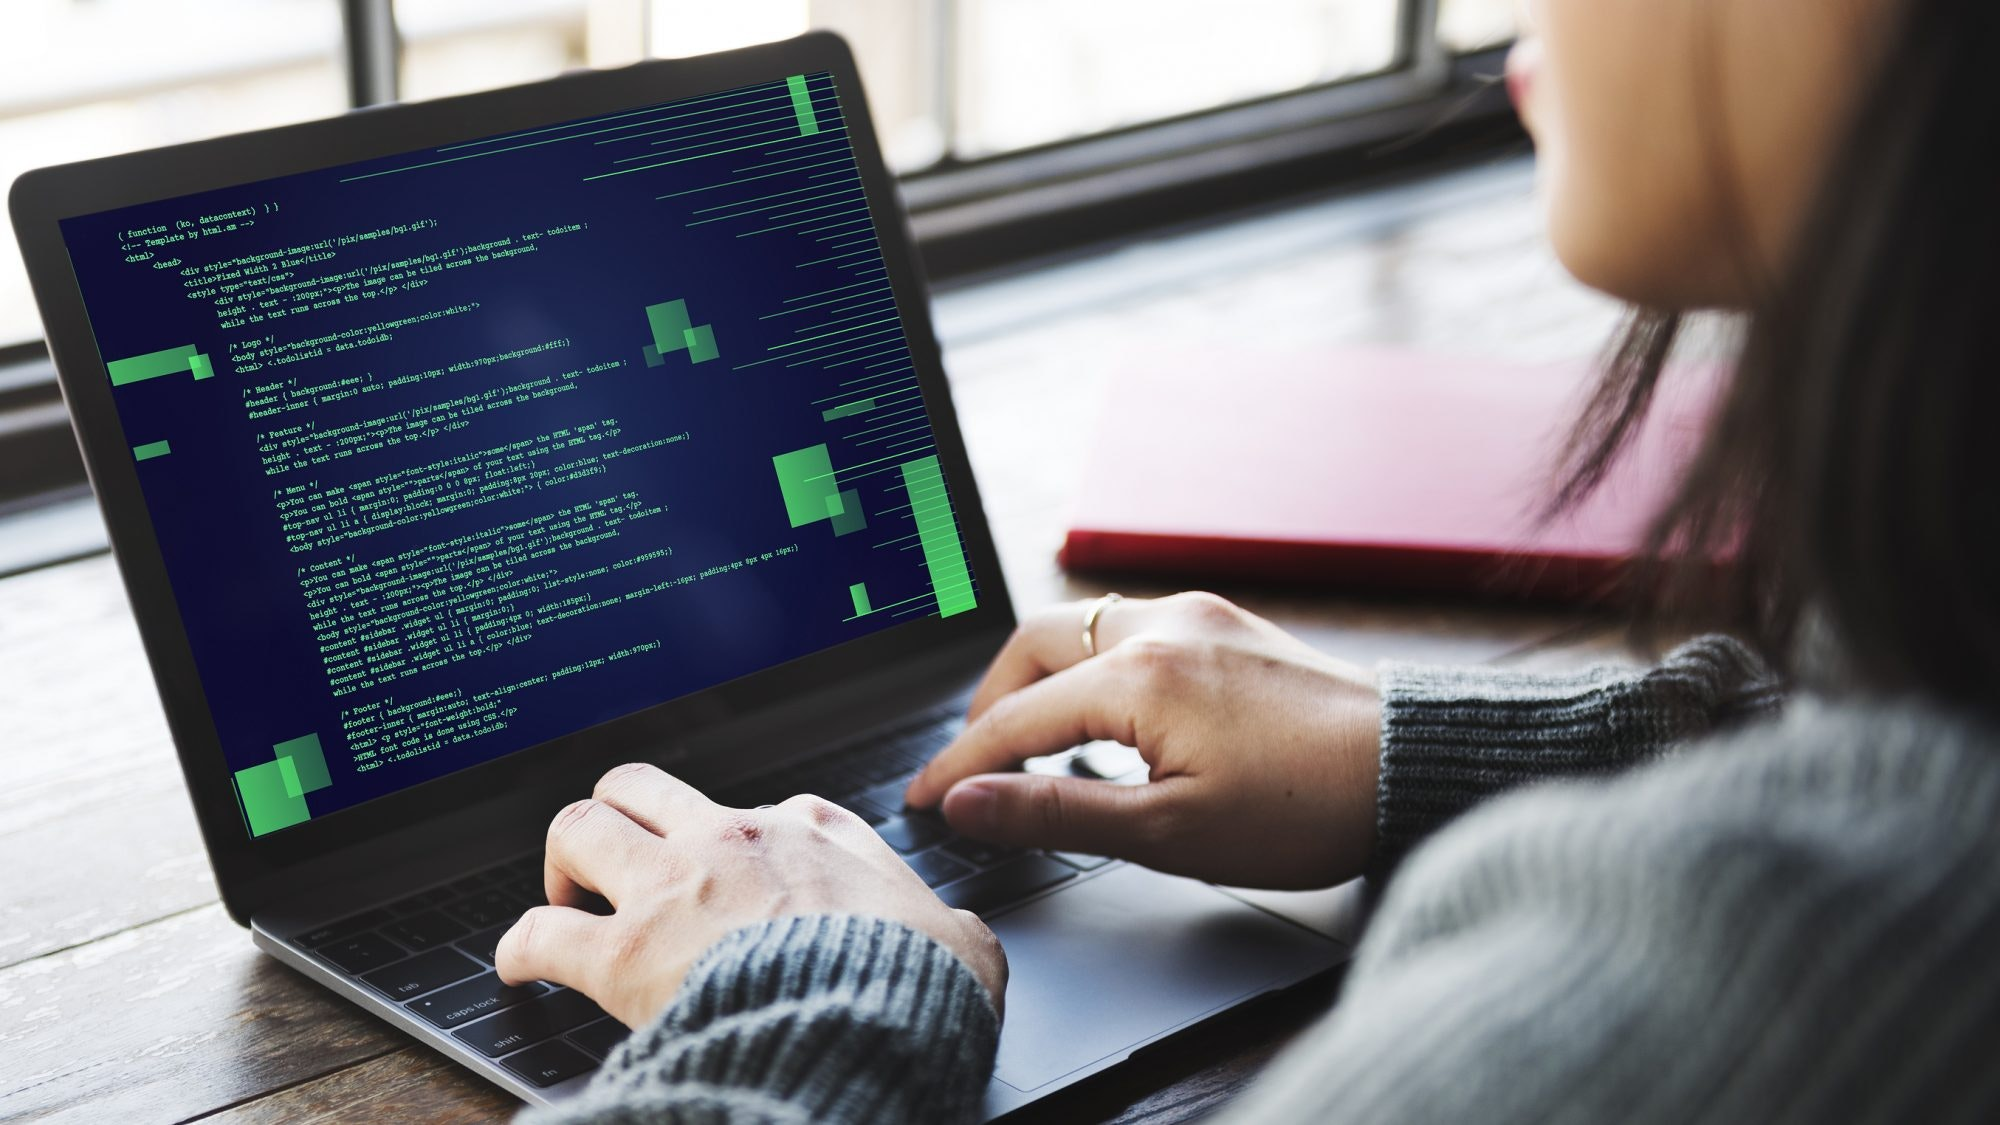 4 Types of Master's degrees to get in Software Engineering